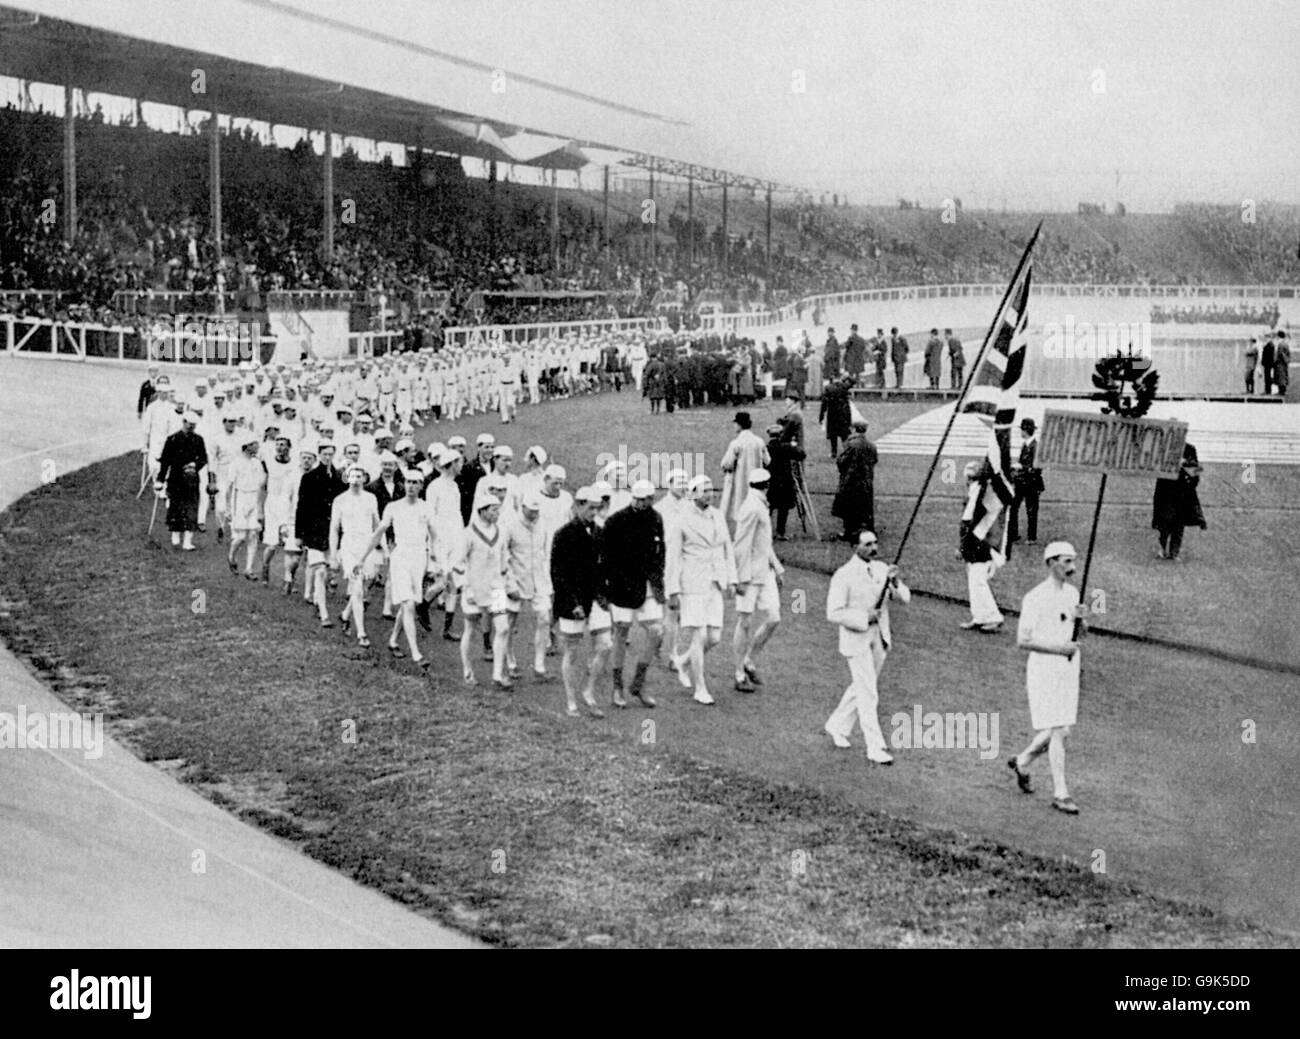 London Olympic Games 1908 - Opening Ceremony - White City - Stock Image